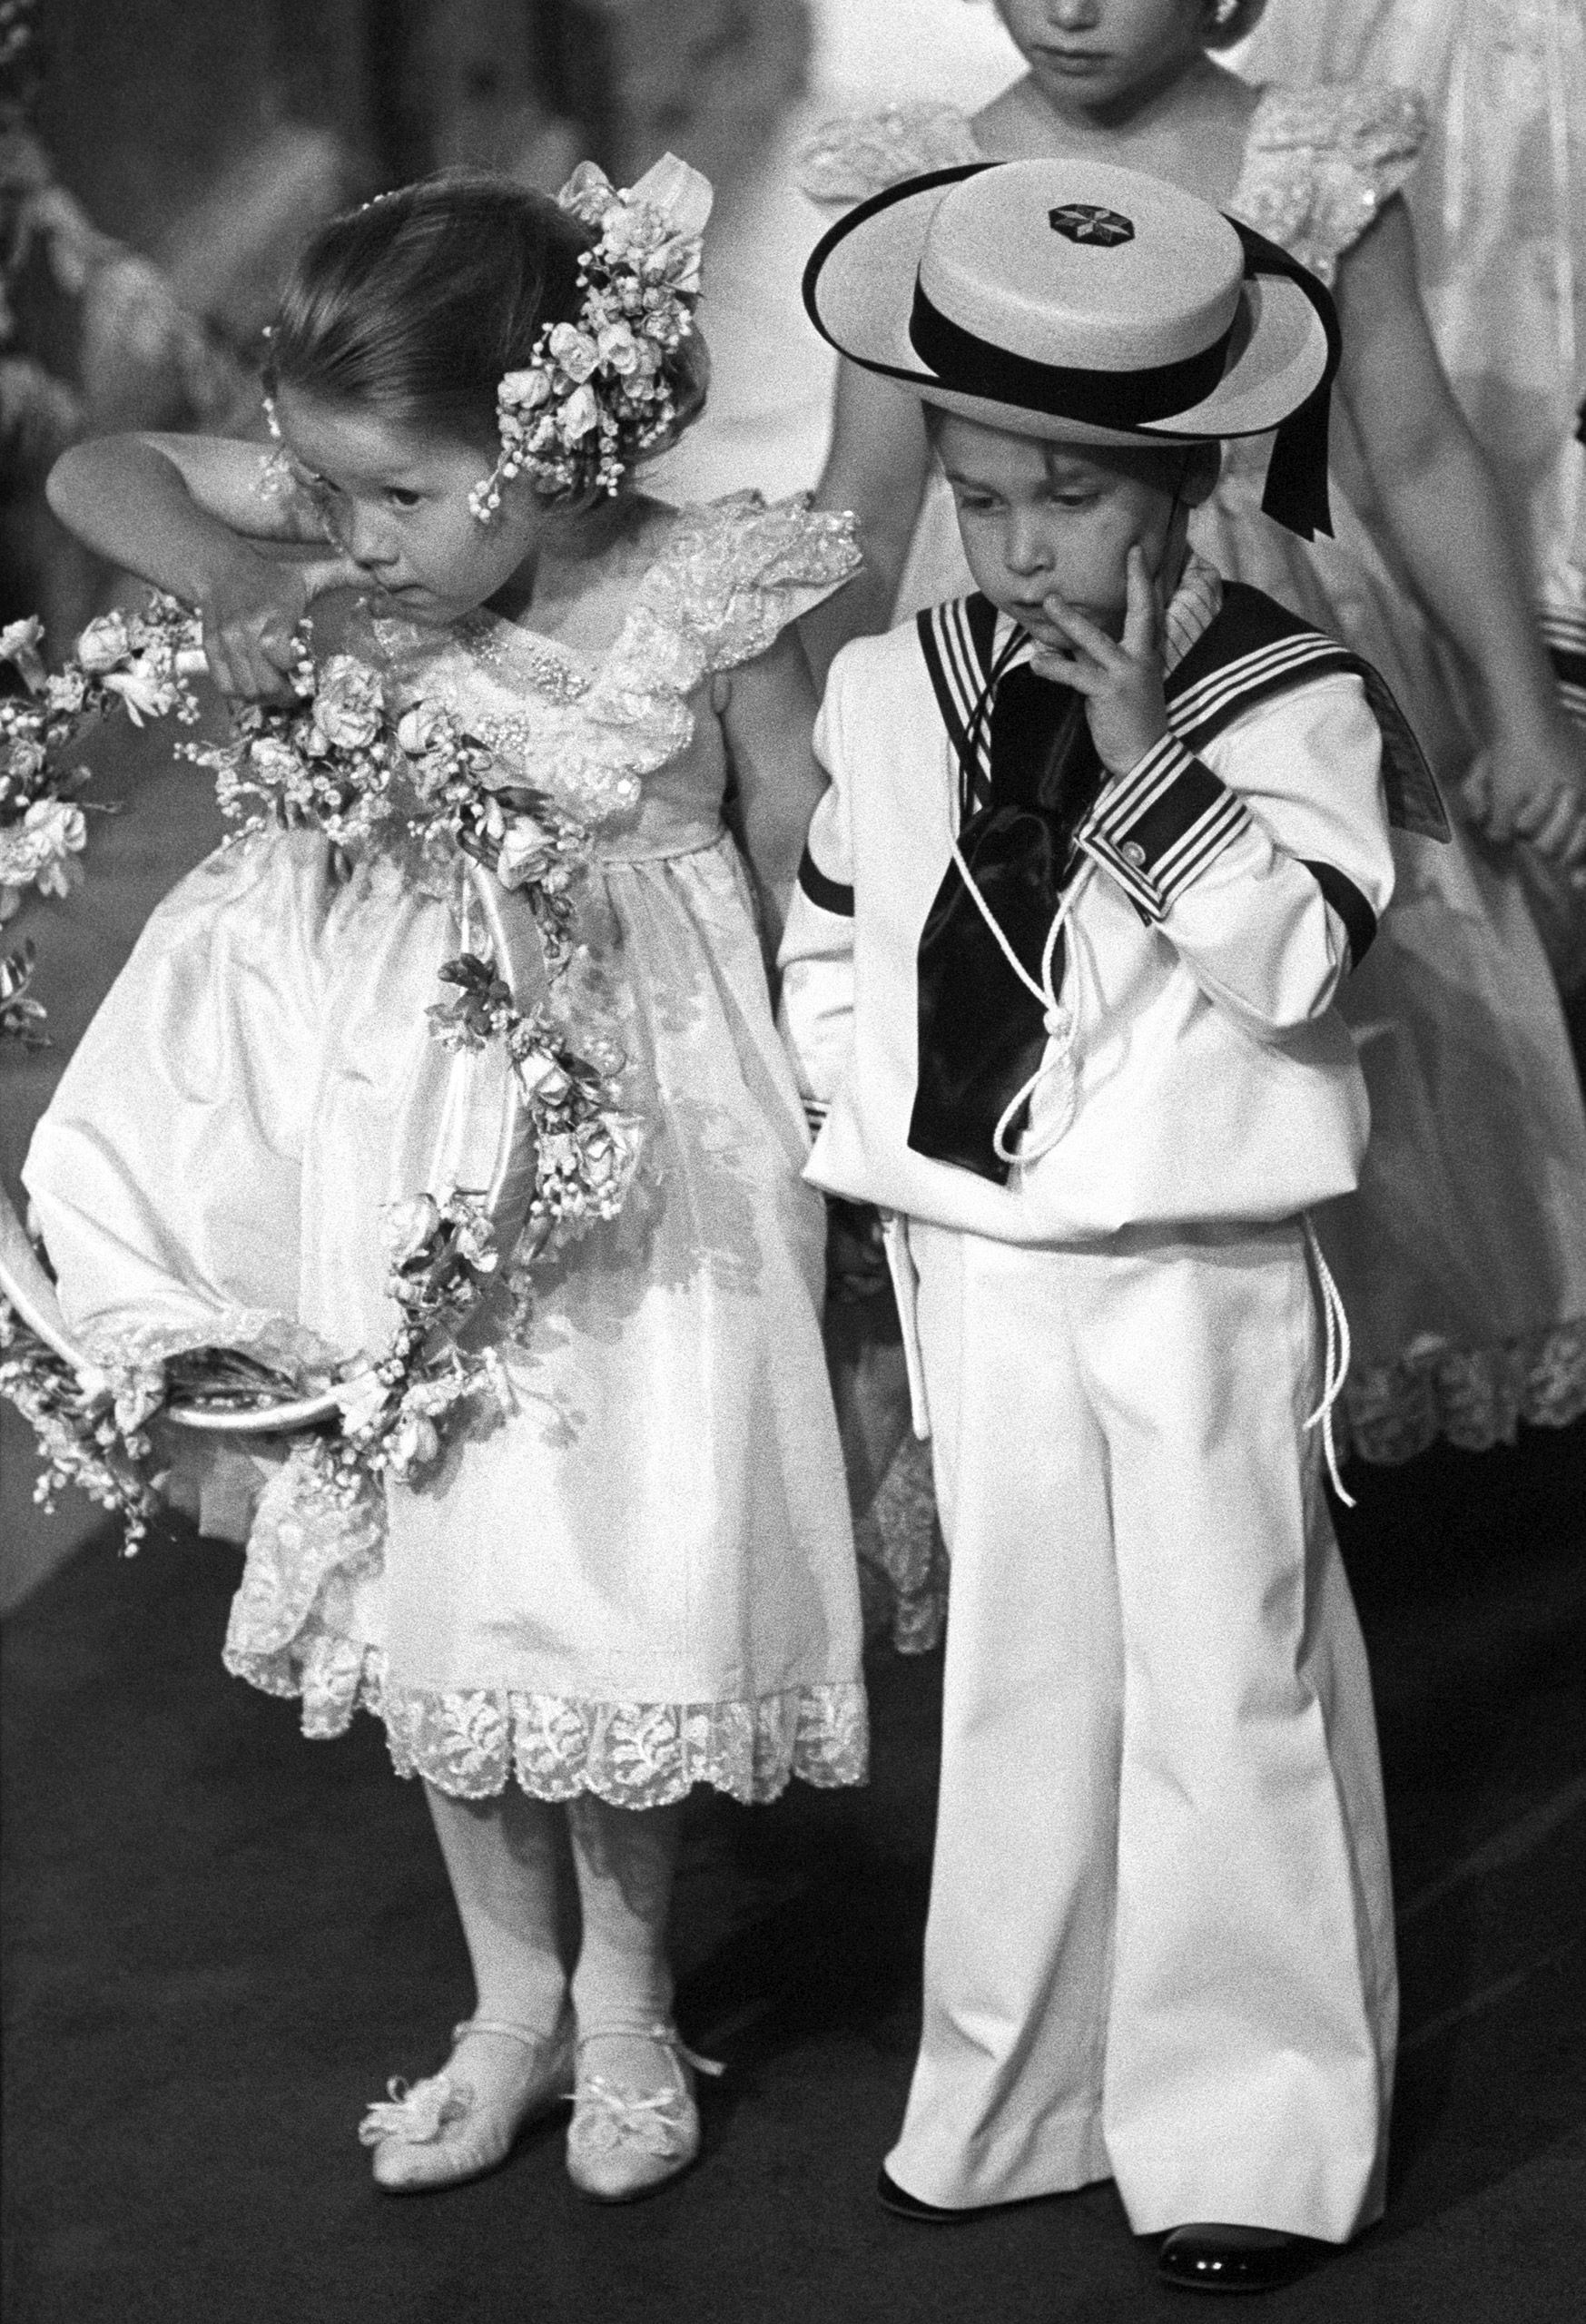 Prince William with his cousin Laura Fellowes at the wedding of the Duke and Duchess of York, July 23, 1986